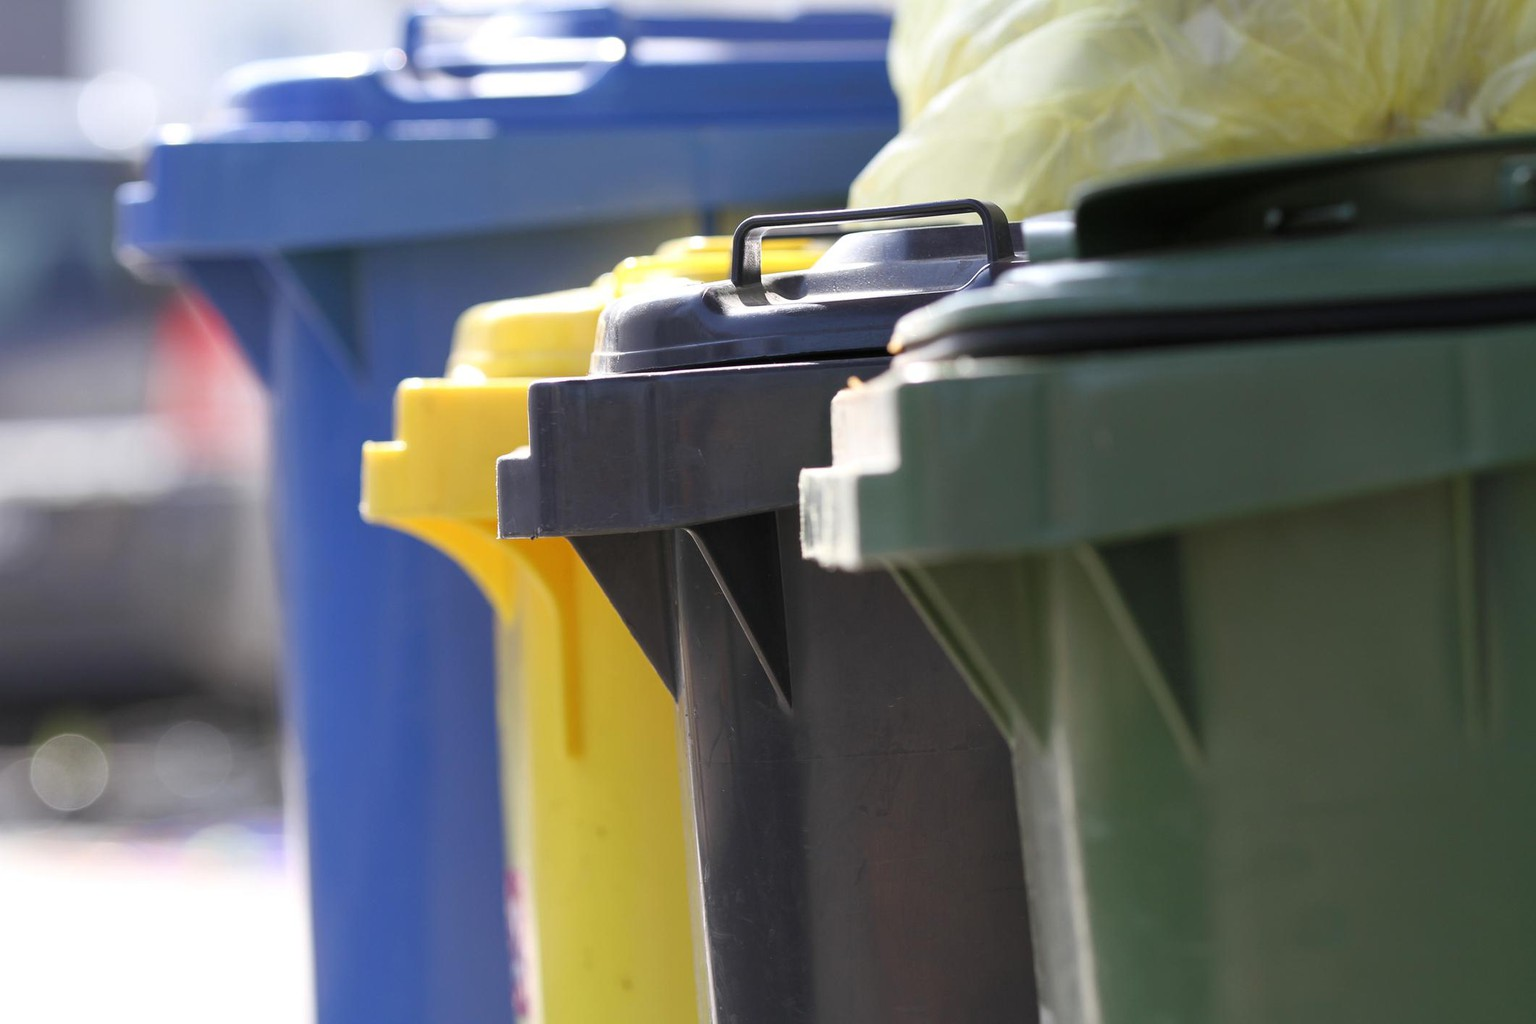 Garbage cans in different colors (blue, yellow, green, grey) in Germany.